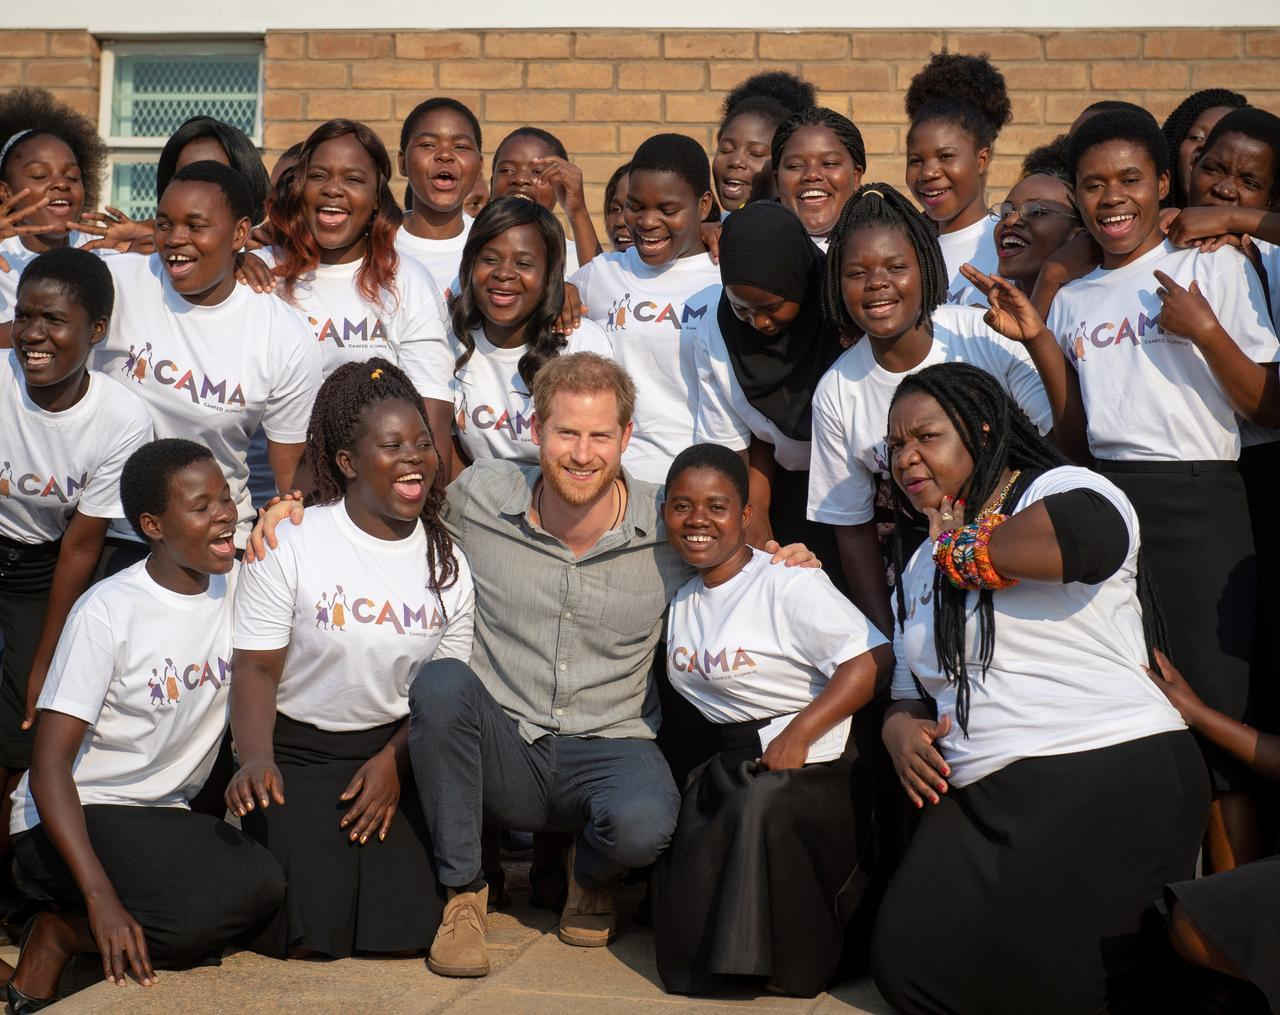 Britain's Prince Harry visits Malawi college